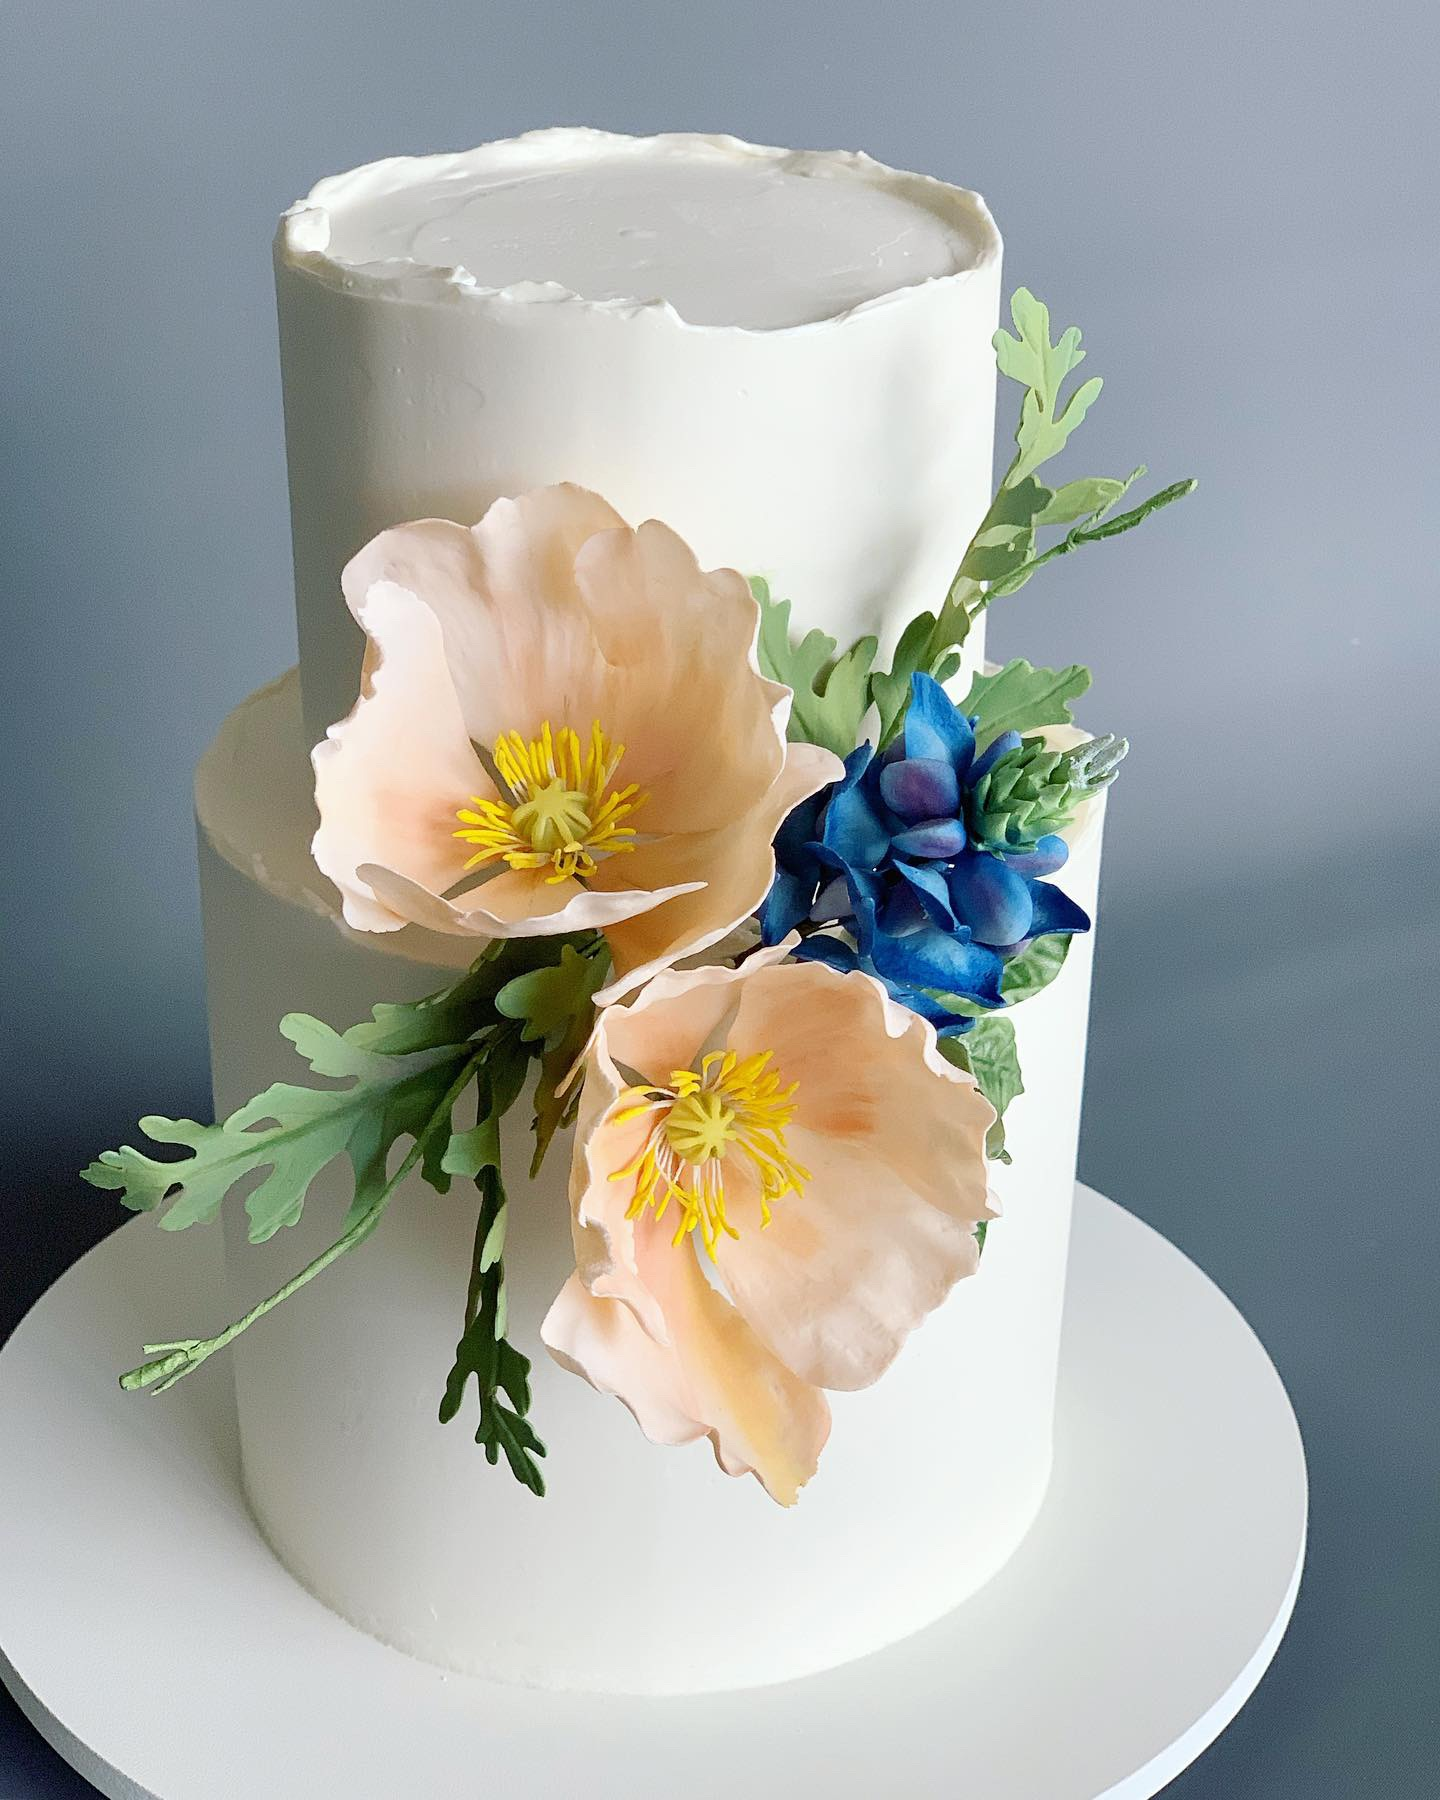 Handcrafted sugar California poppies and Texas bluebonnets. Image copyright Carla Schier.